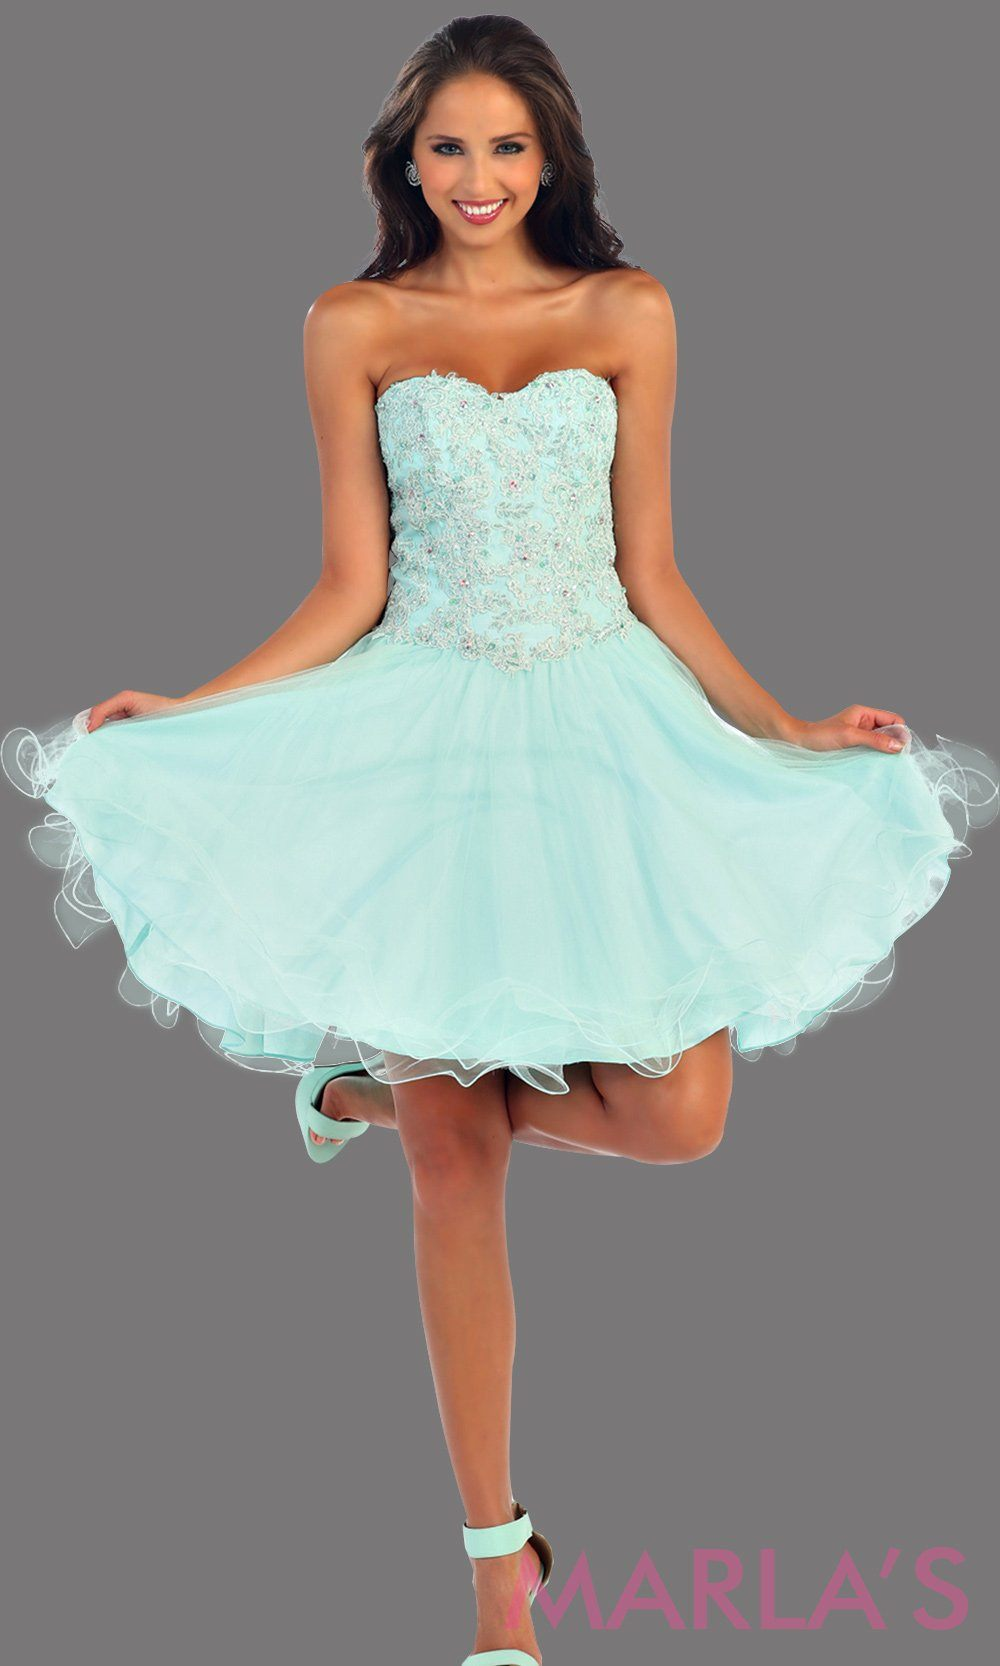 Short strapless aqua sweetheart dress with a puffy skirt. The beaded sequin bodice has a corset back. This blue dress is perfect for grade 8 graduation, damas, homecoming or birthday party. Available in plus sizes.